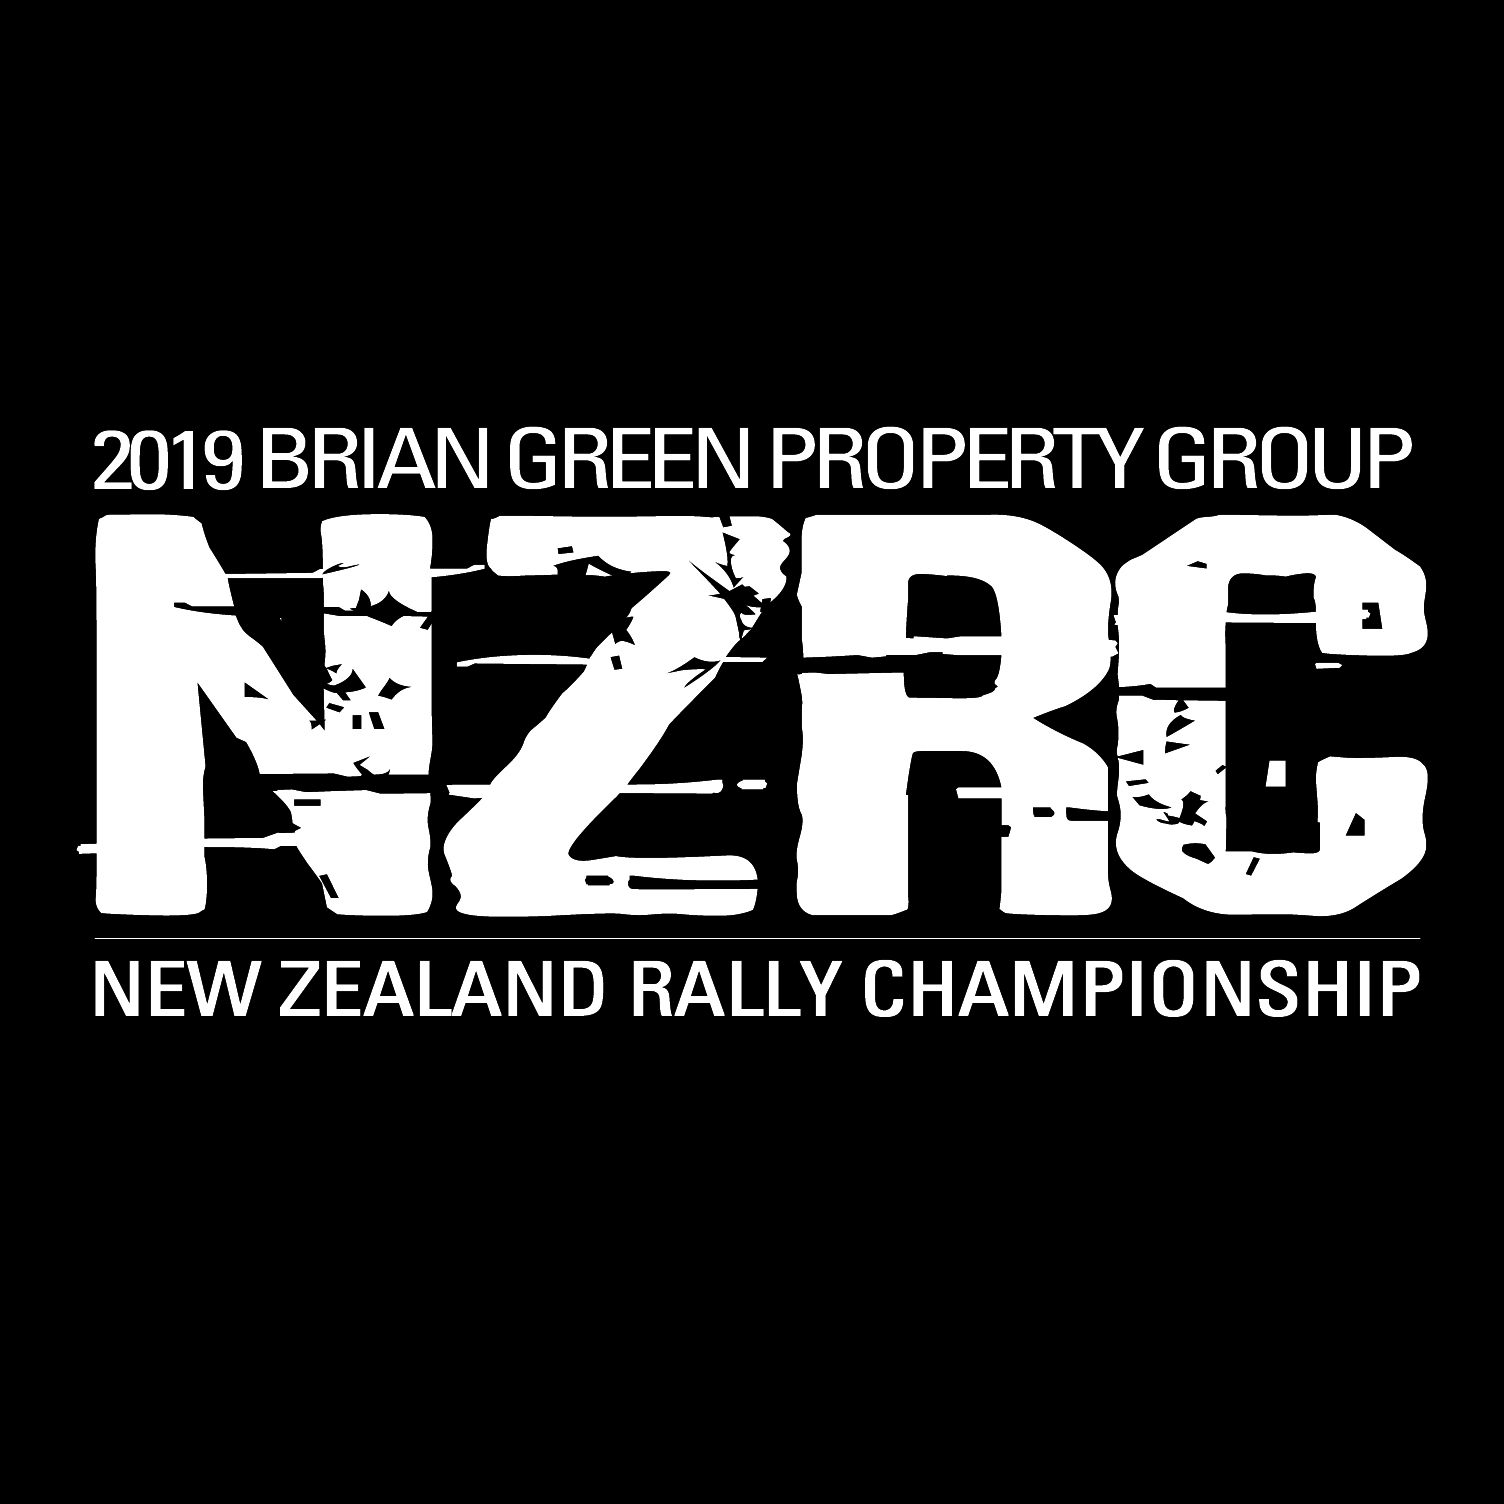 Van Klink lands first blow in 2WD scrap | :: Brian Green Property Group New Zealand Rally Championship ::